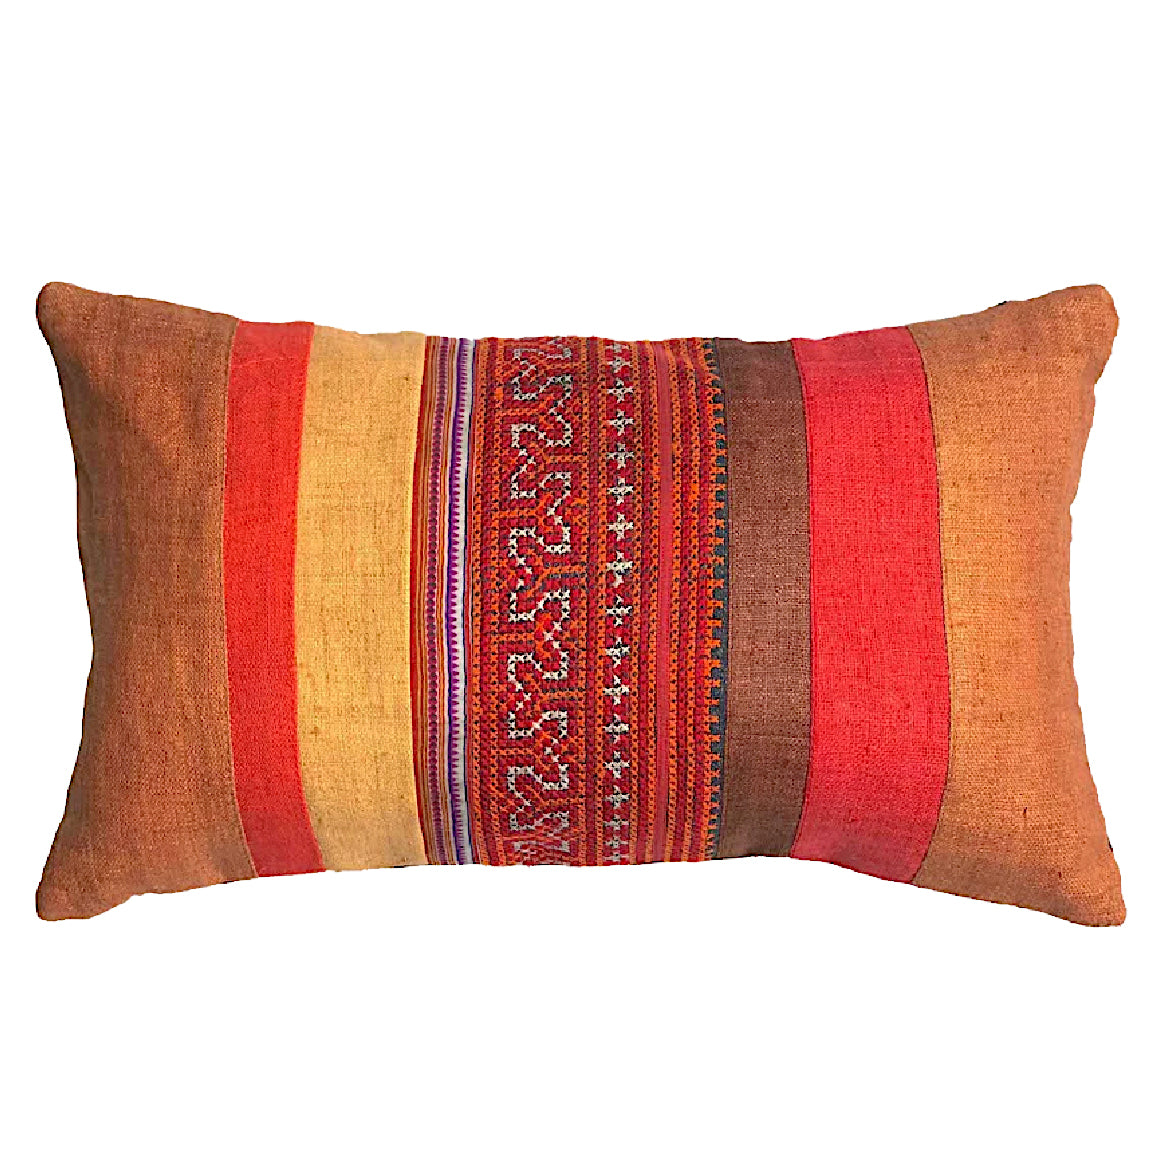 """Sapa"" Vintage Hmong Pillow Covers"